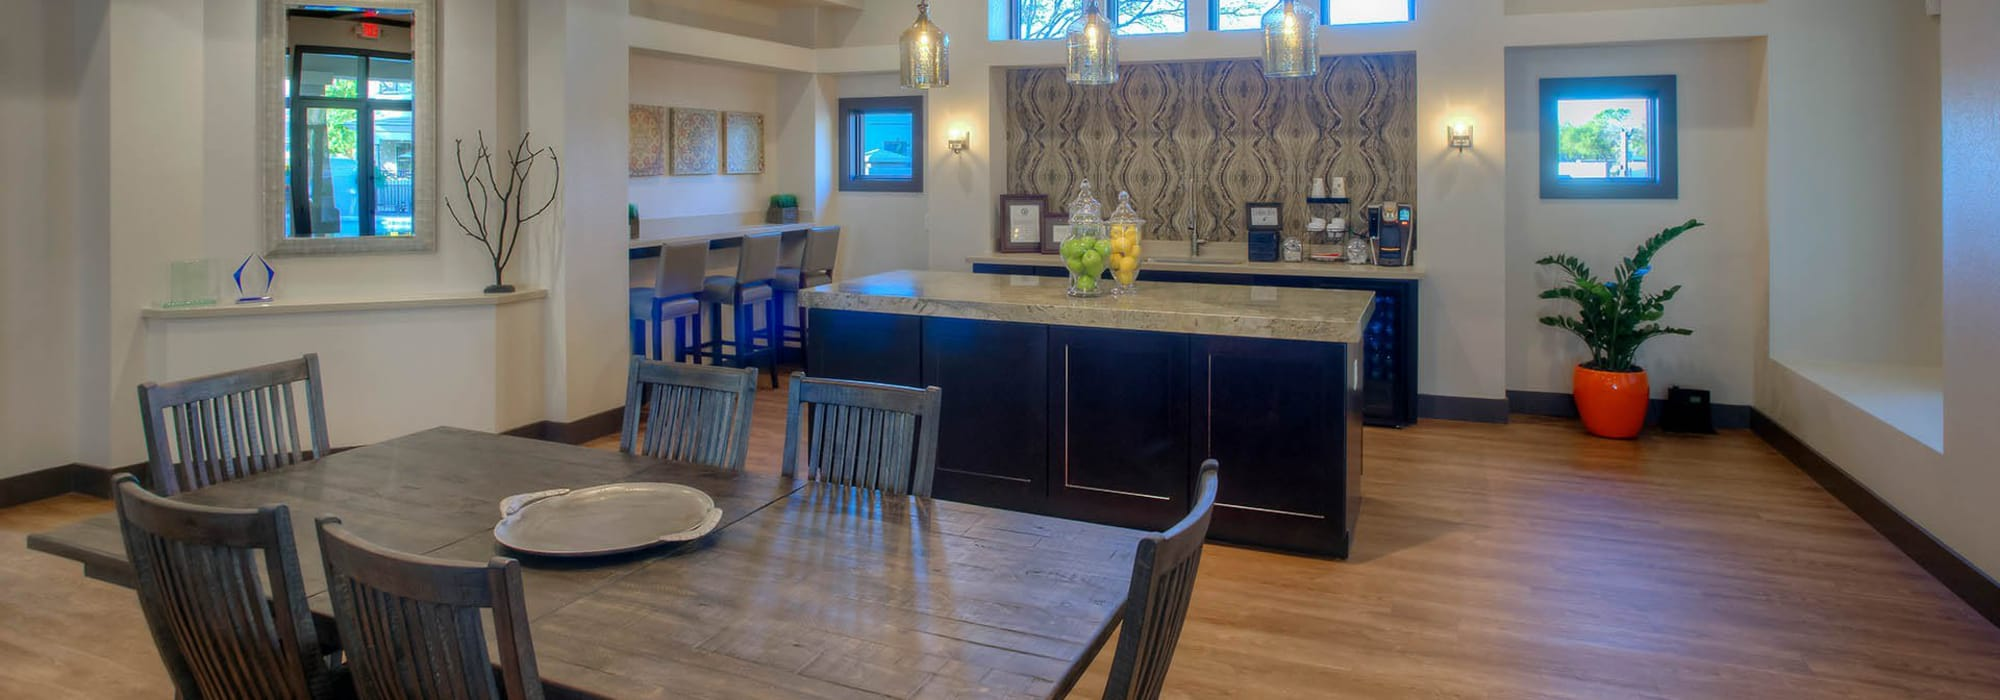 Spacious clubhouse to entertain friends and family at The Reserve at Gilbert Towne Centre in Gilbert, Arizona